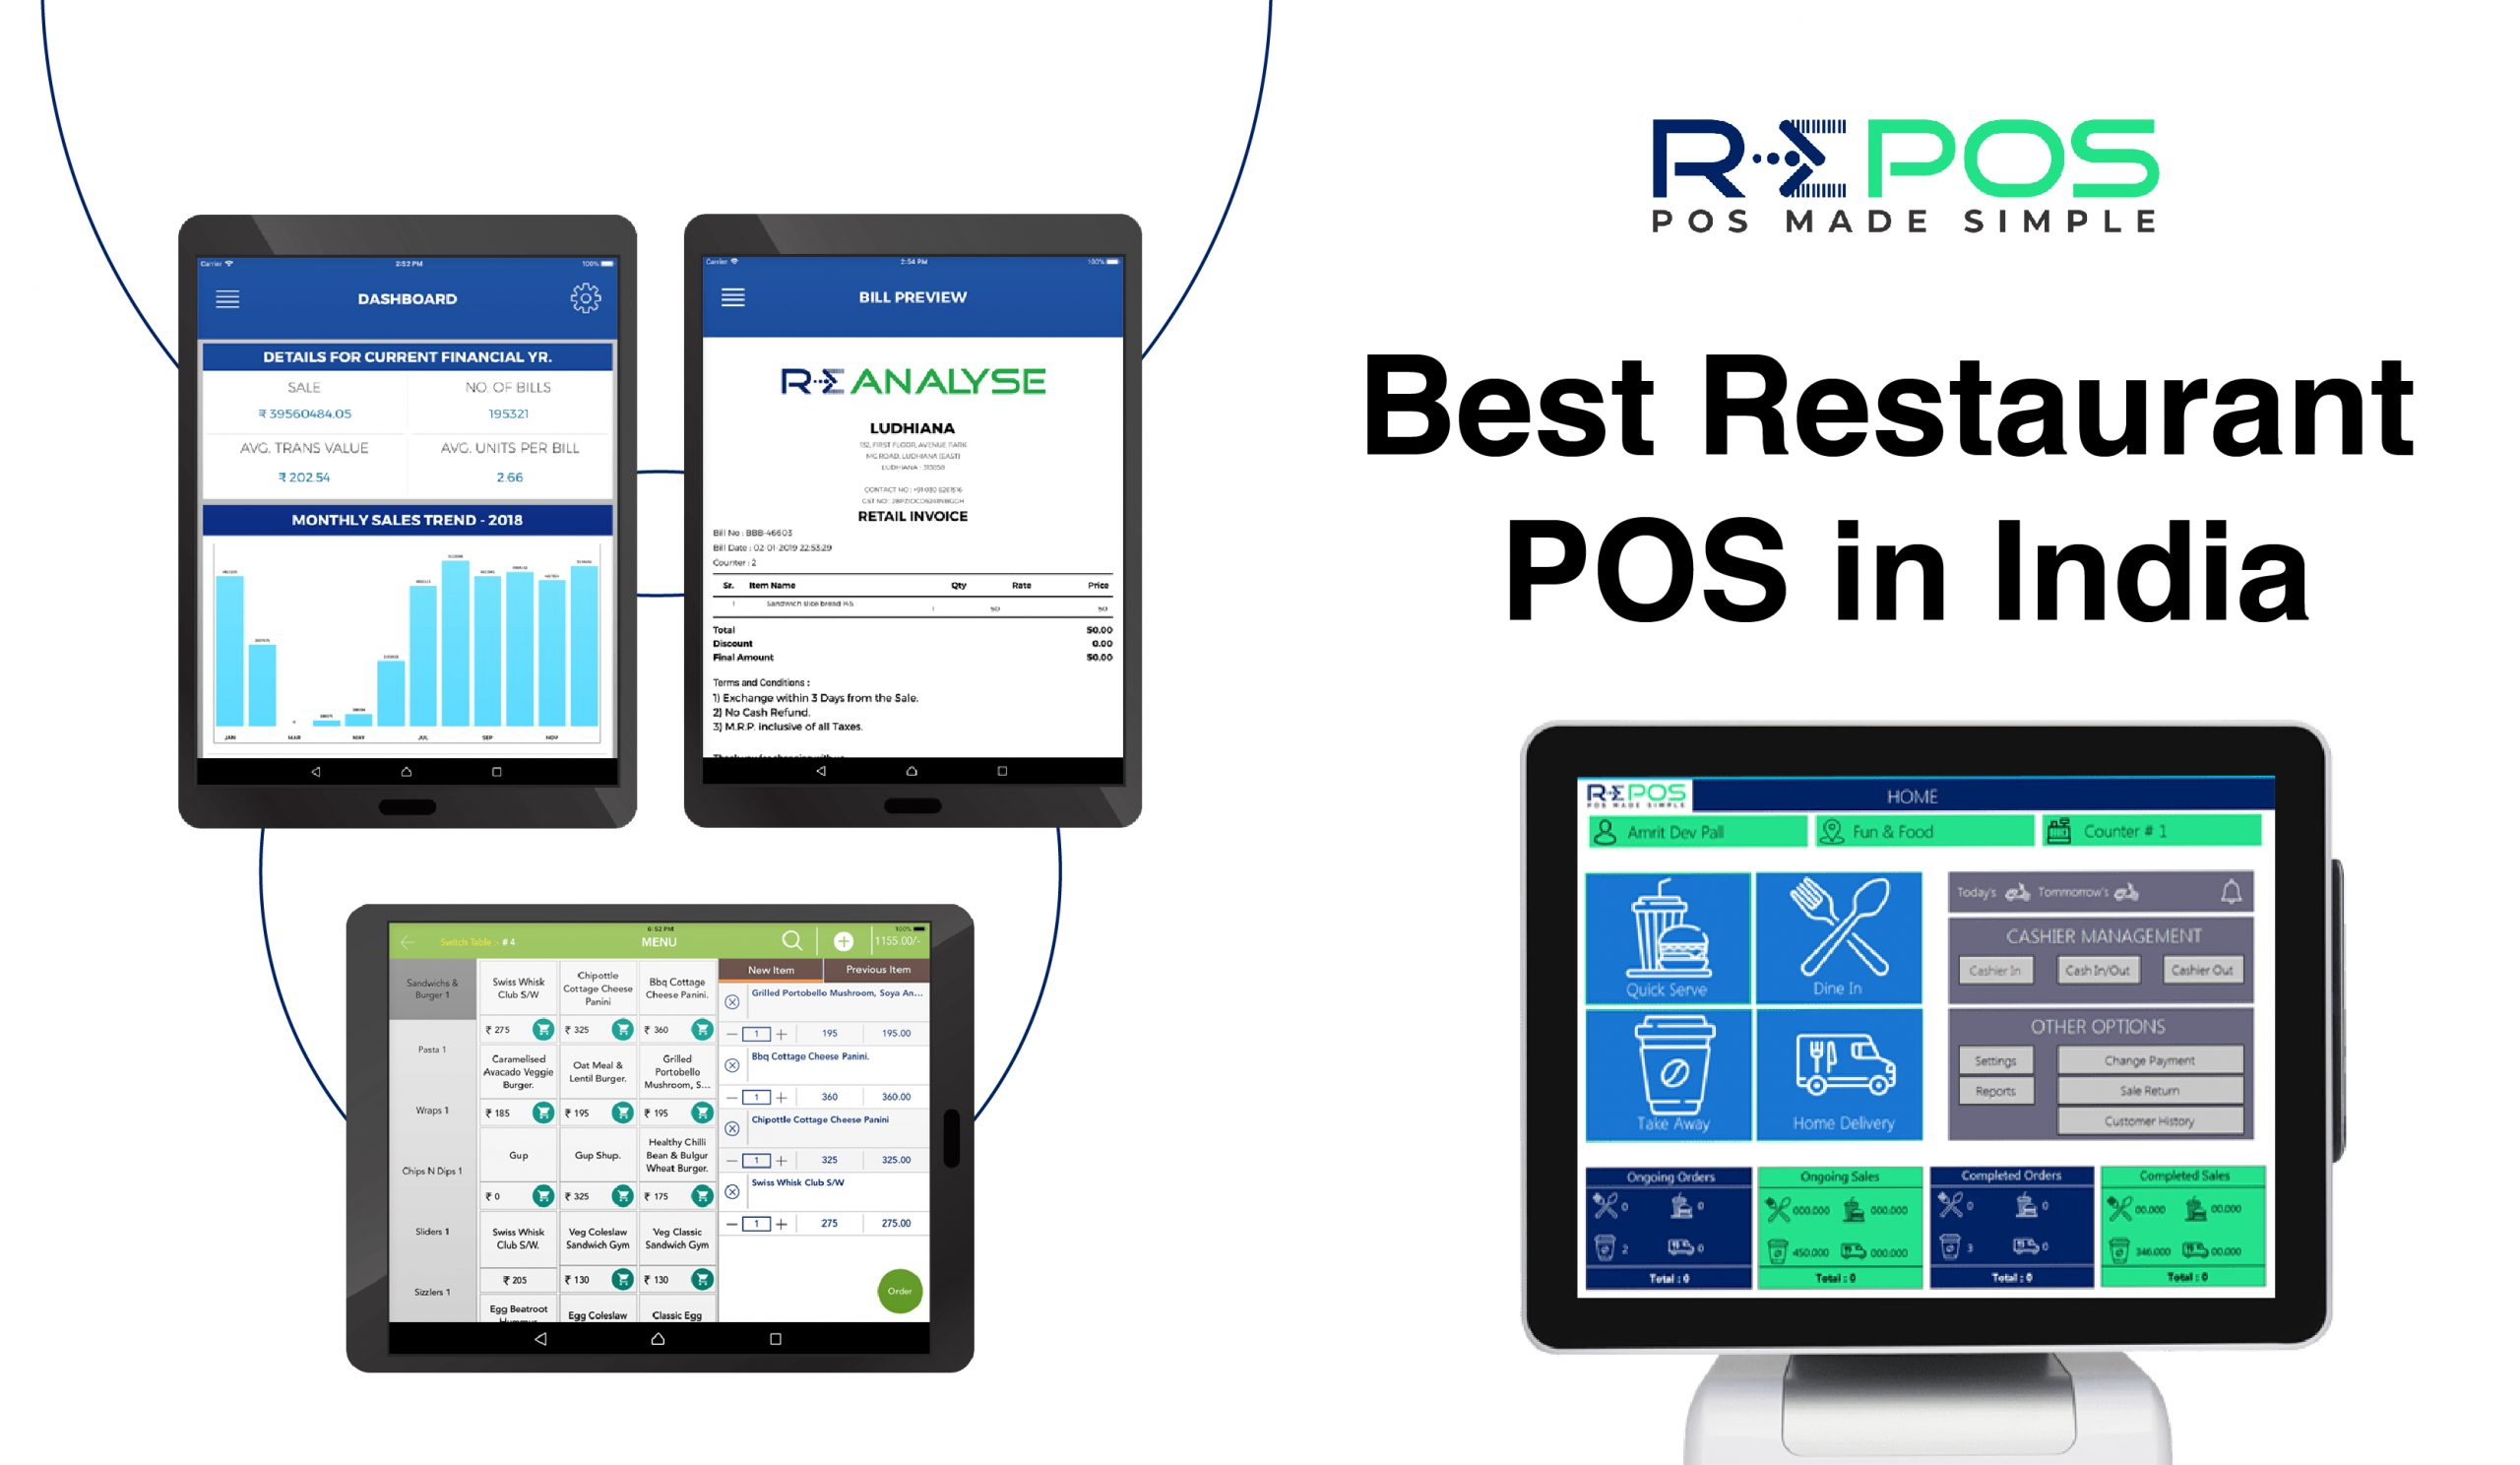 RePOS Best Restaurant POS (Point of Sale) in India